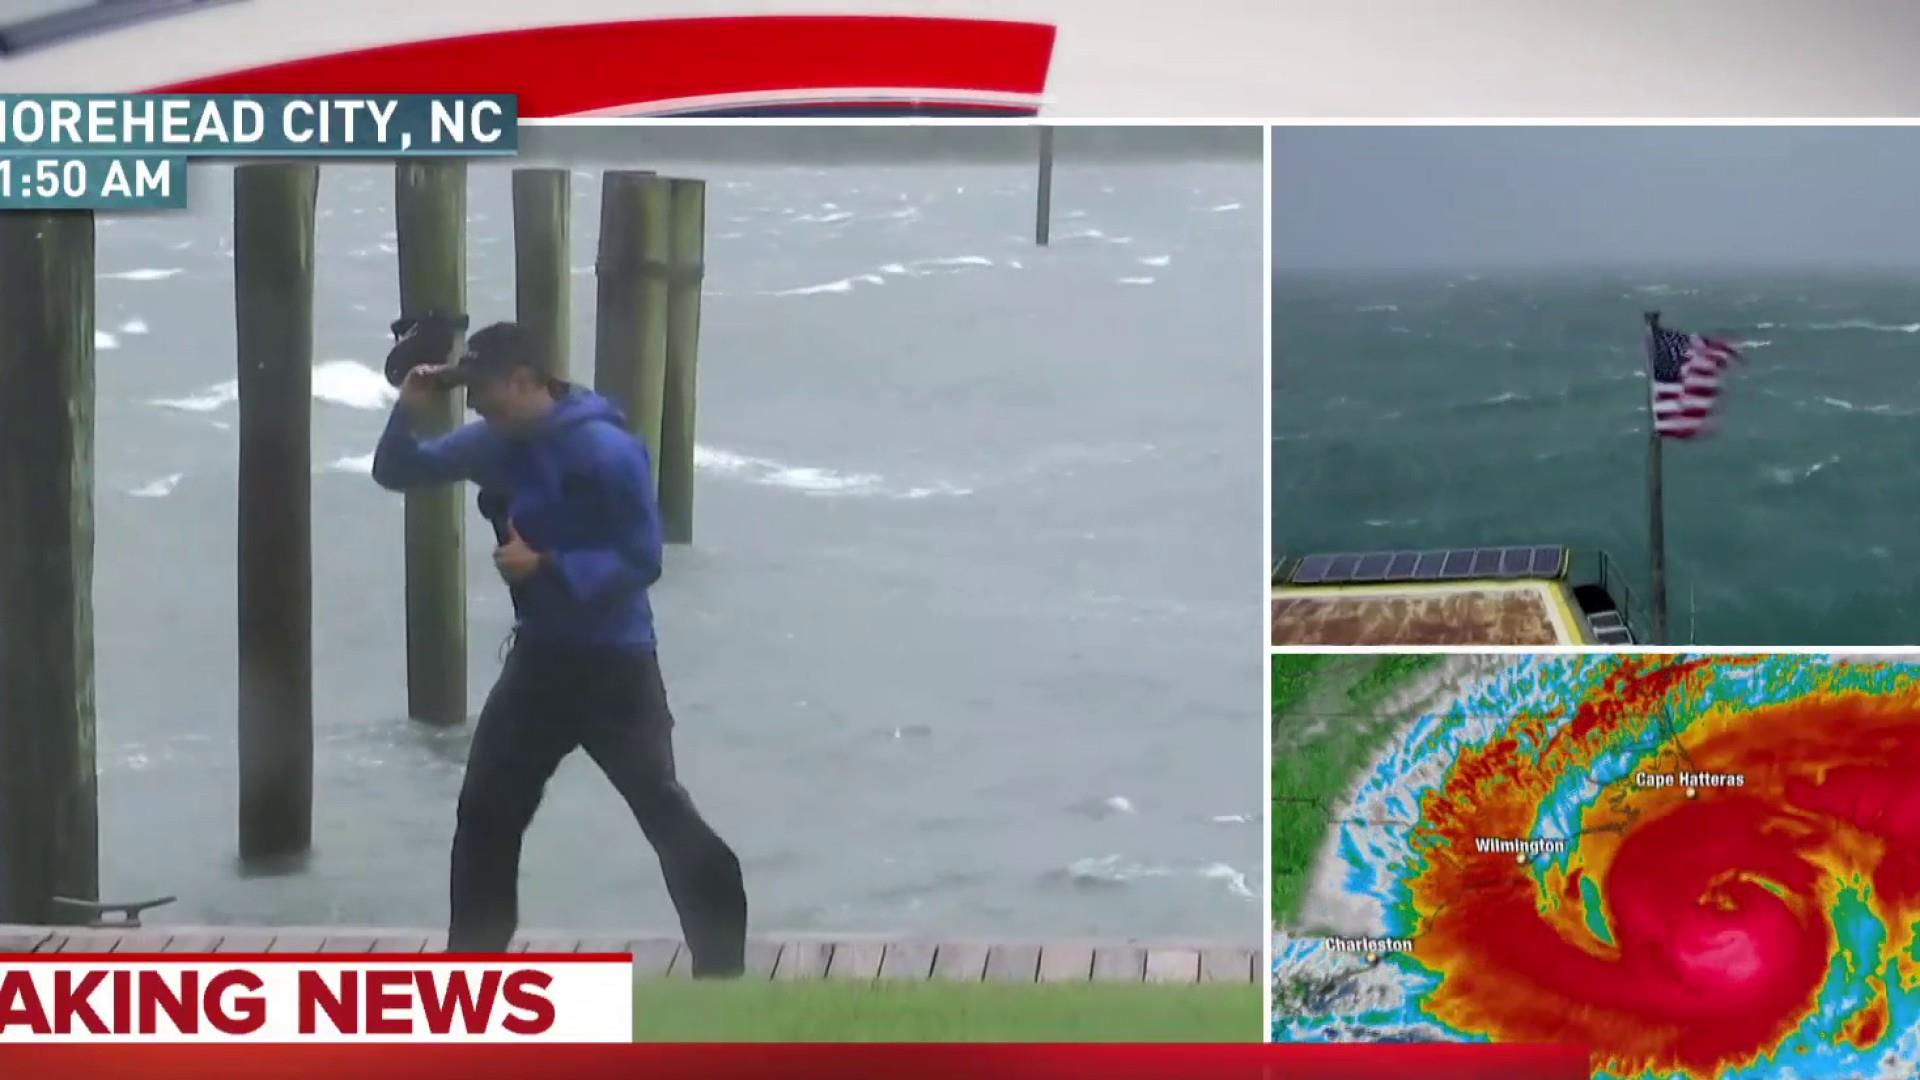 Hurricane Florence's effects felt in Morehead City, NC